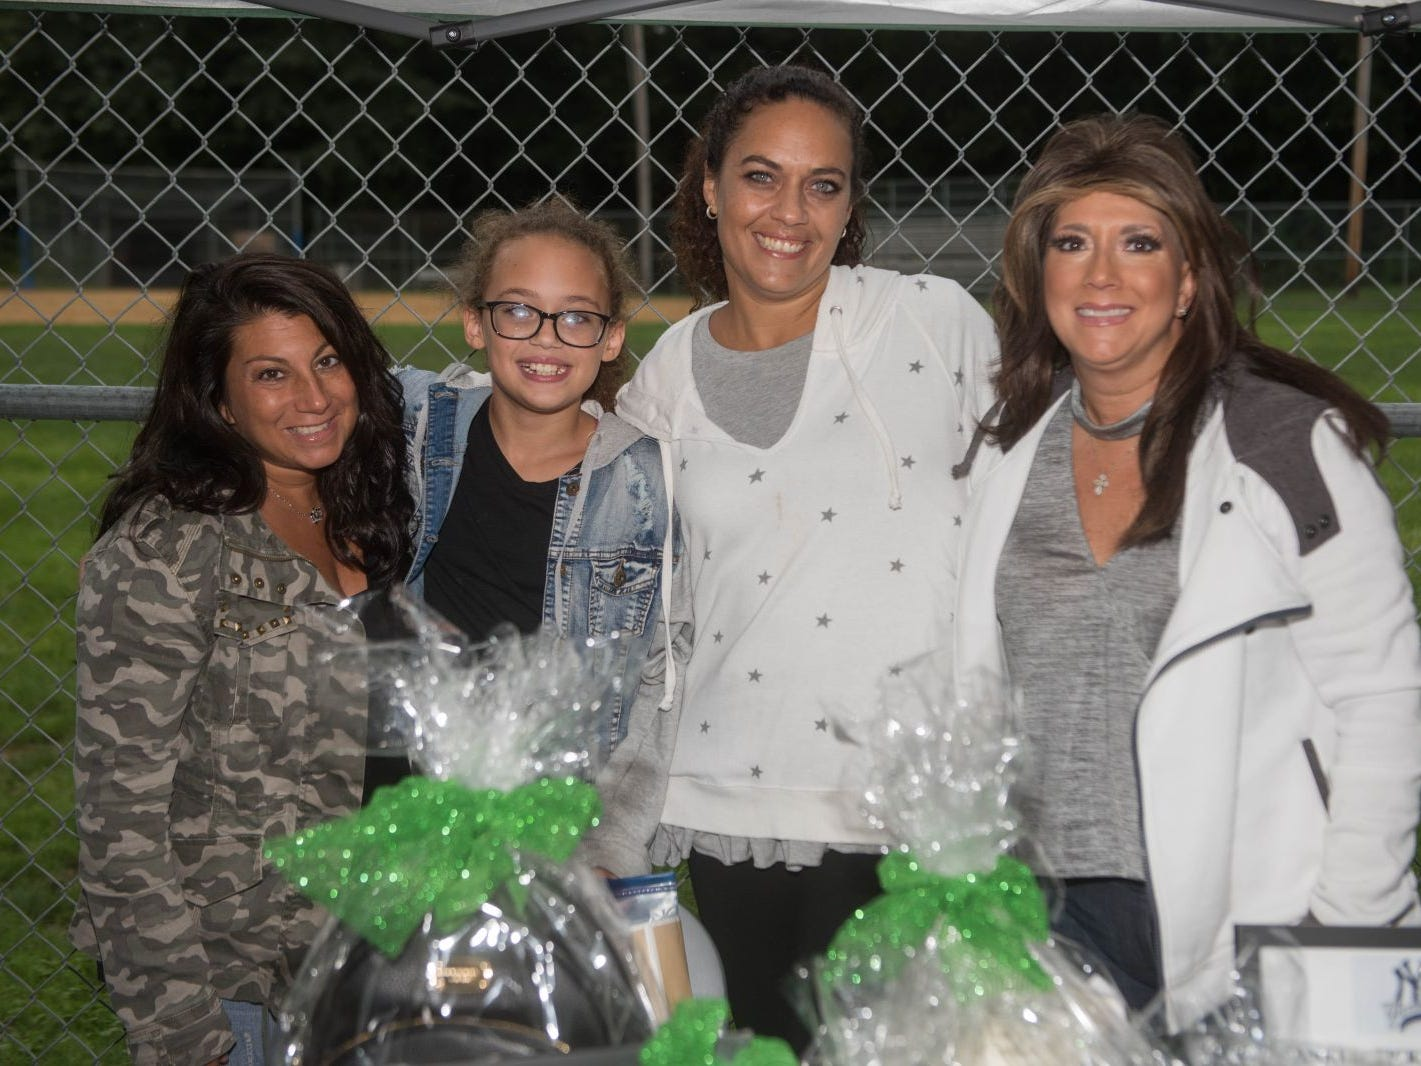 Denise Limone, Lily Kingslow, Vanessa Nienhause and Annamarie Sasso. Mark A. Sasso Memorial Fund hosted its 10th annual Softball Fundraiser this past Saturday at Wagaraw Baseball Field in Hawthorne. Don La Greca was joined by many of his fellow ESPN personalities and celebrity guests to play against the winning ALRC team from the round robin tournament that took place throughout the day. 09/08/2018